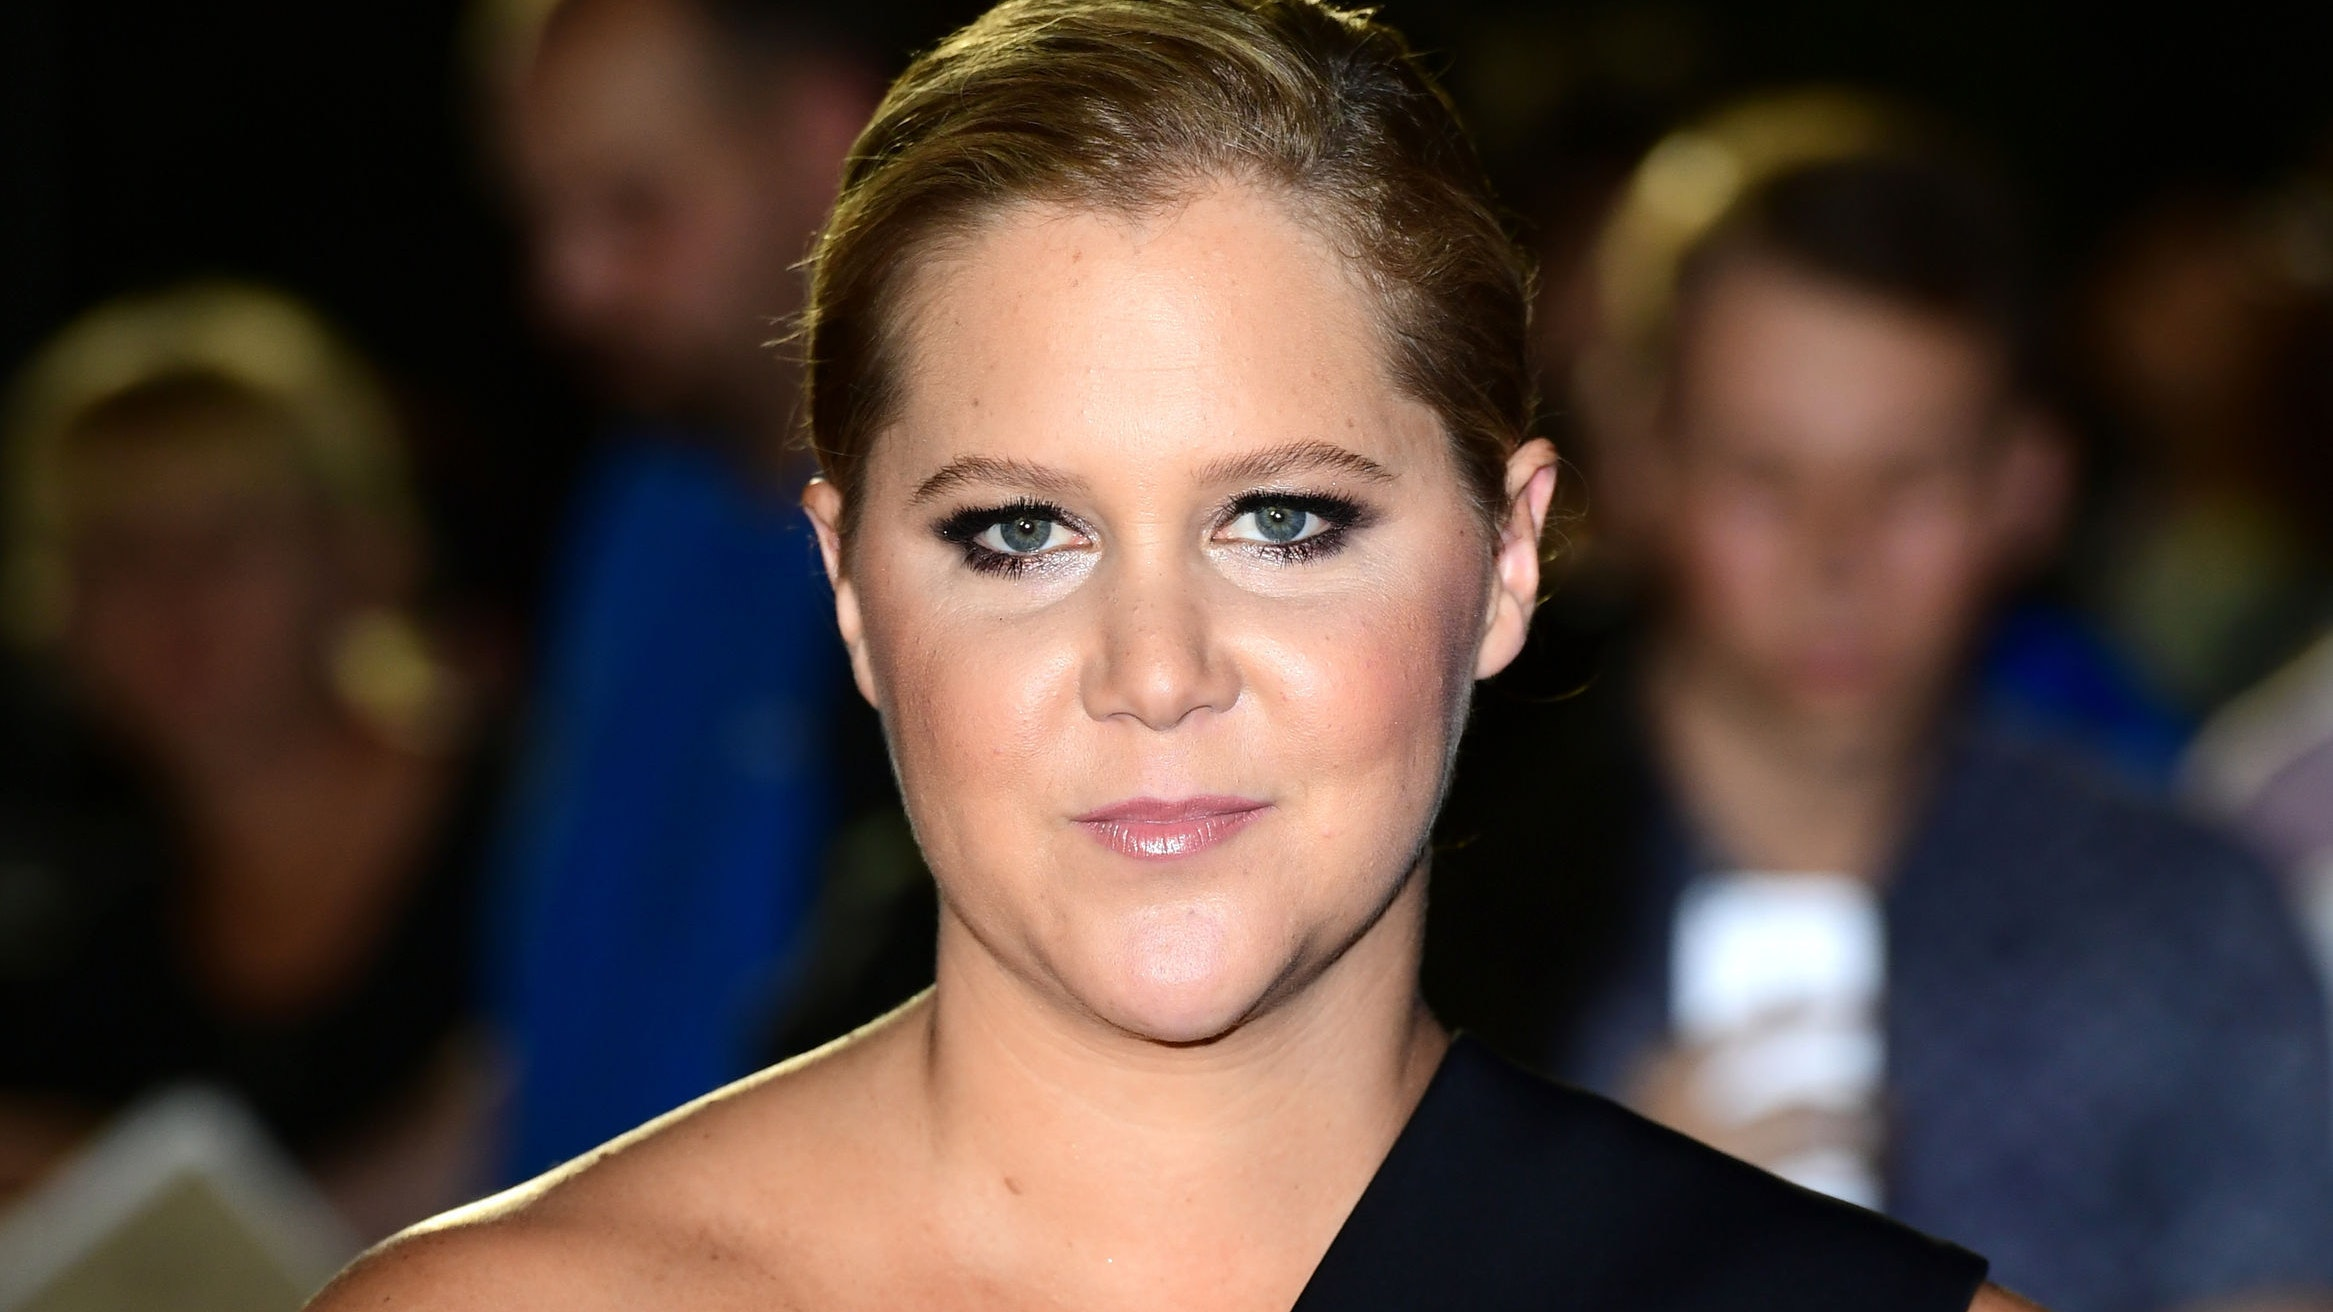 Amy Schumer naked (86 photos), Topless, Leaked, Boobs, lingerie 2006